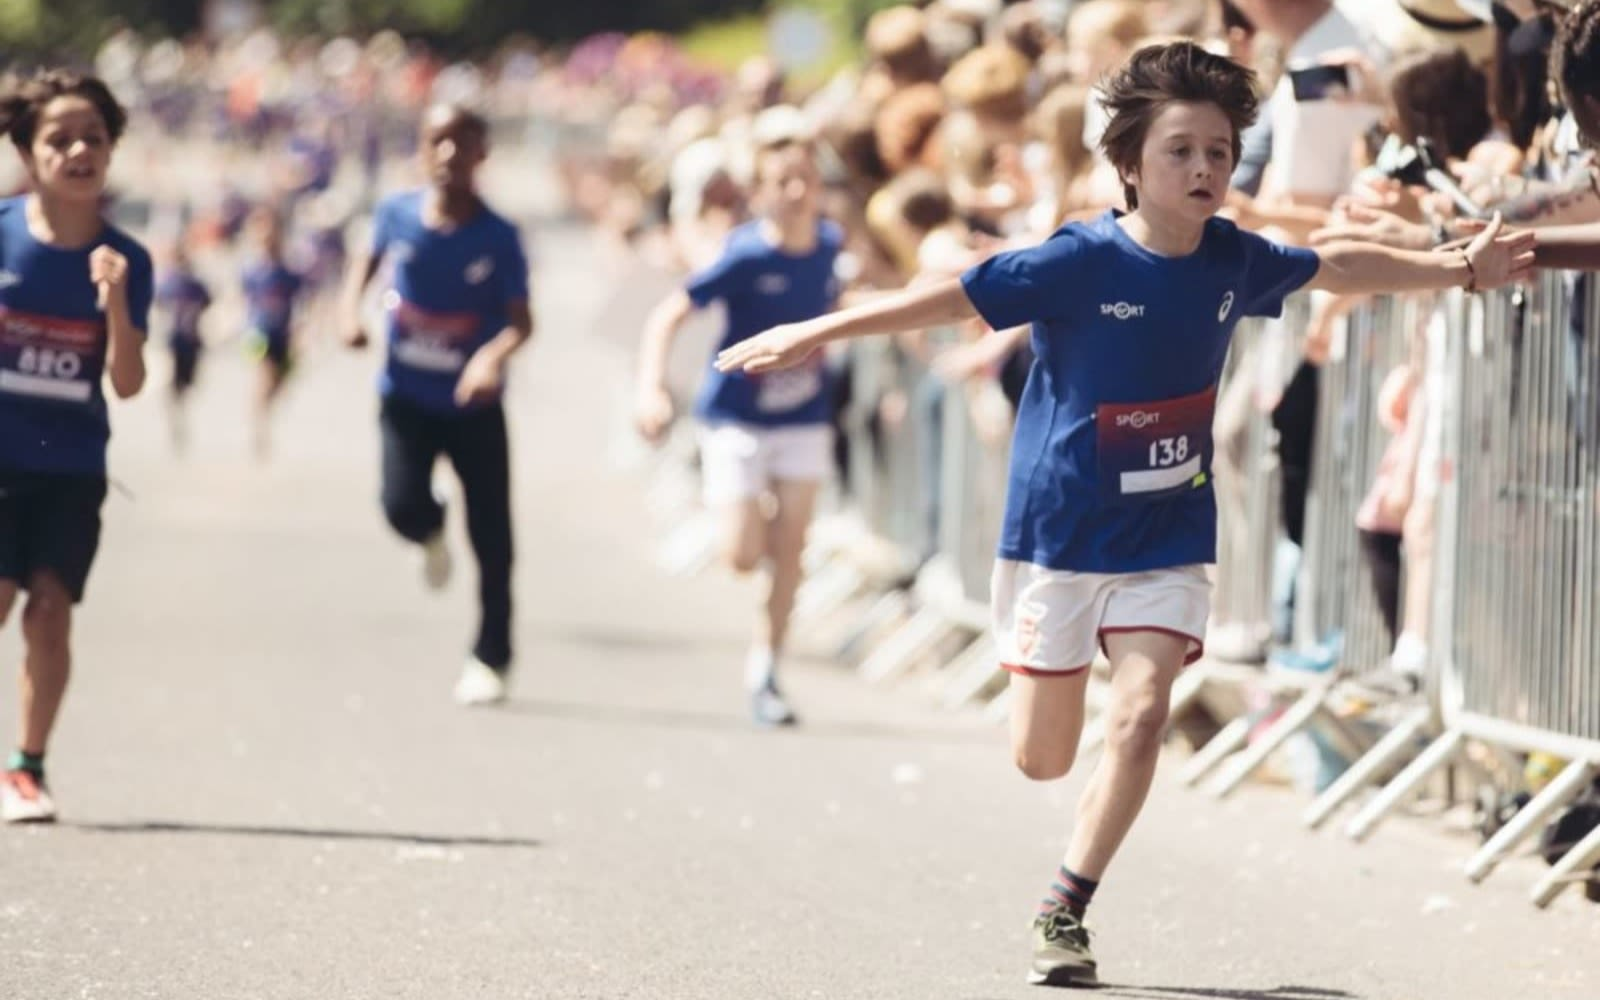 A child runs across the finishing line of the Wheetabix Protein Youth Challenge